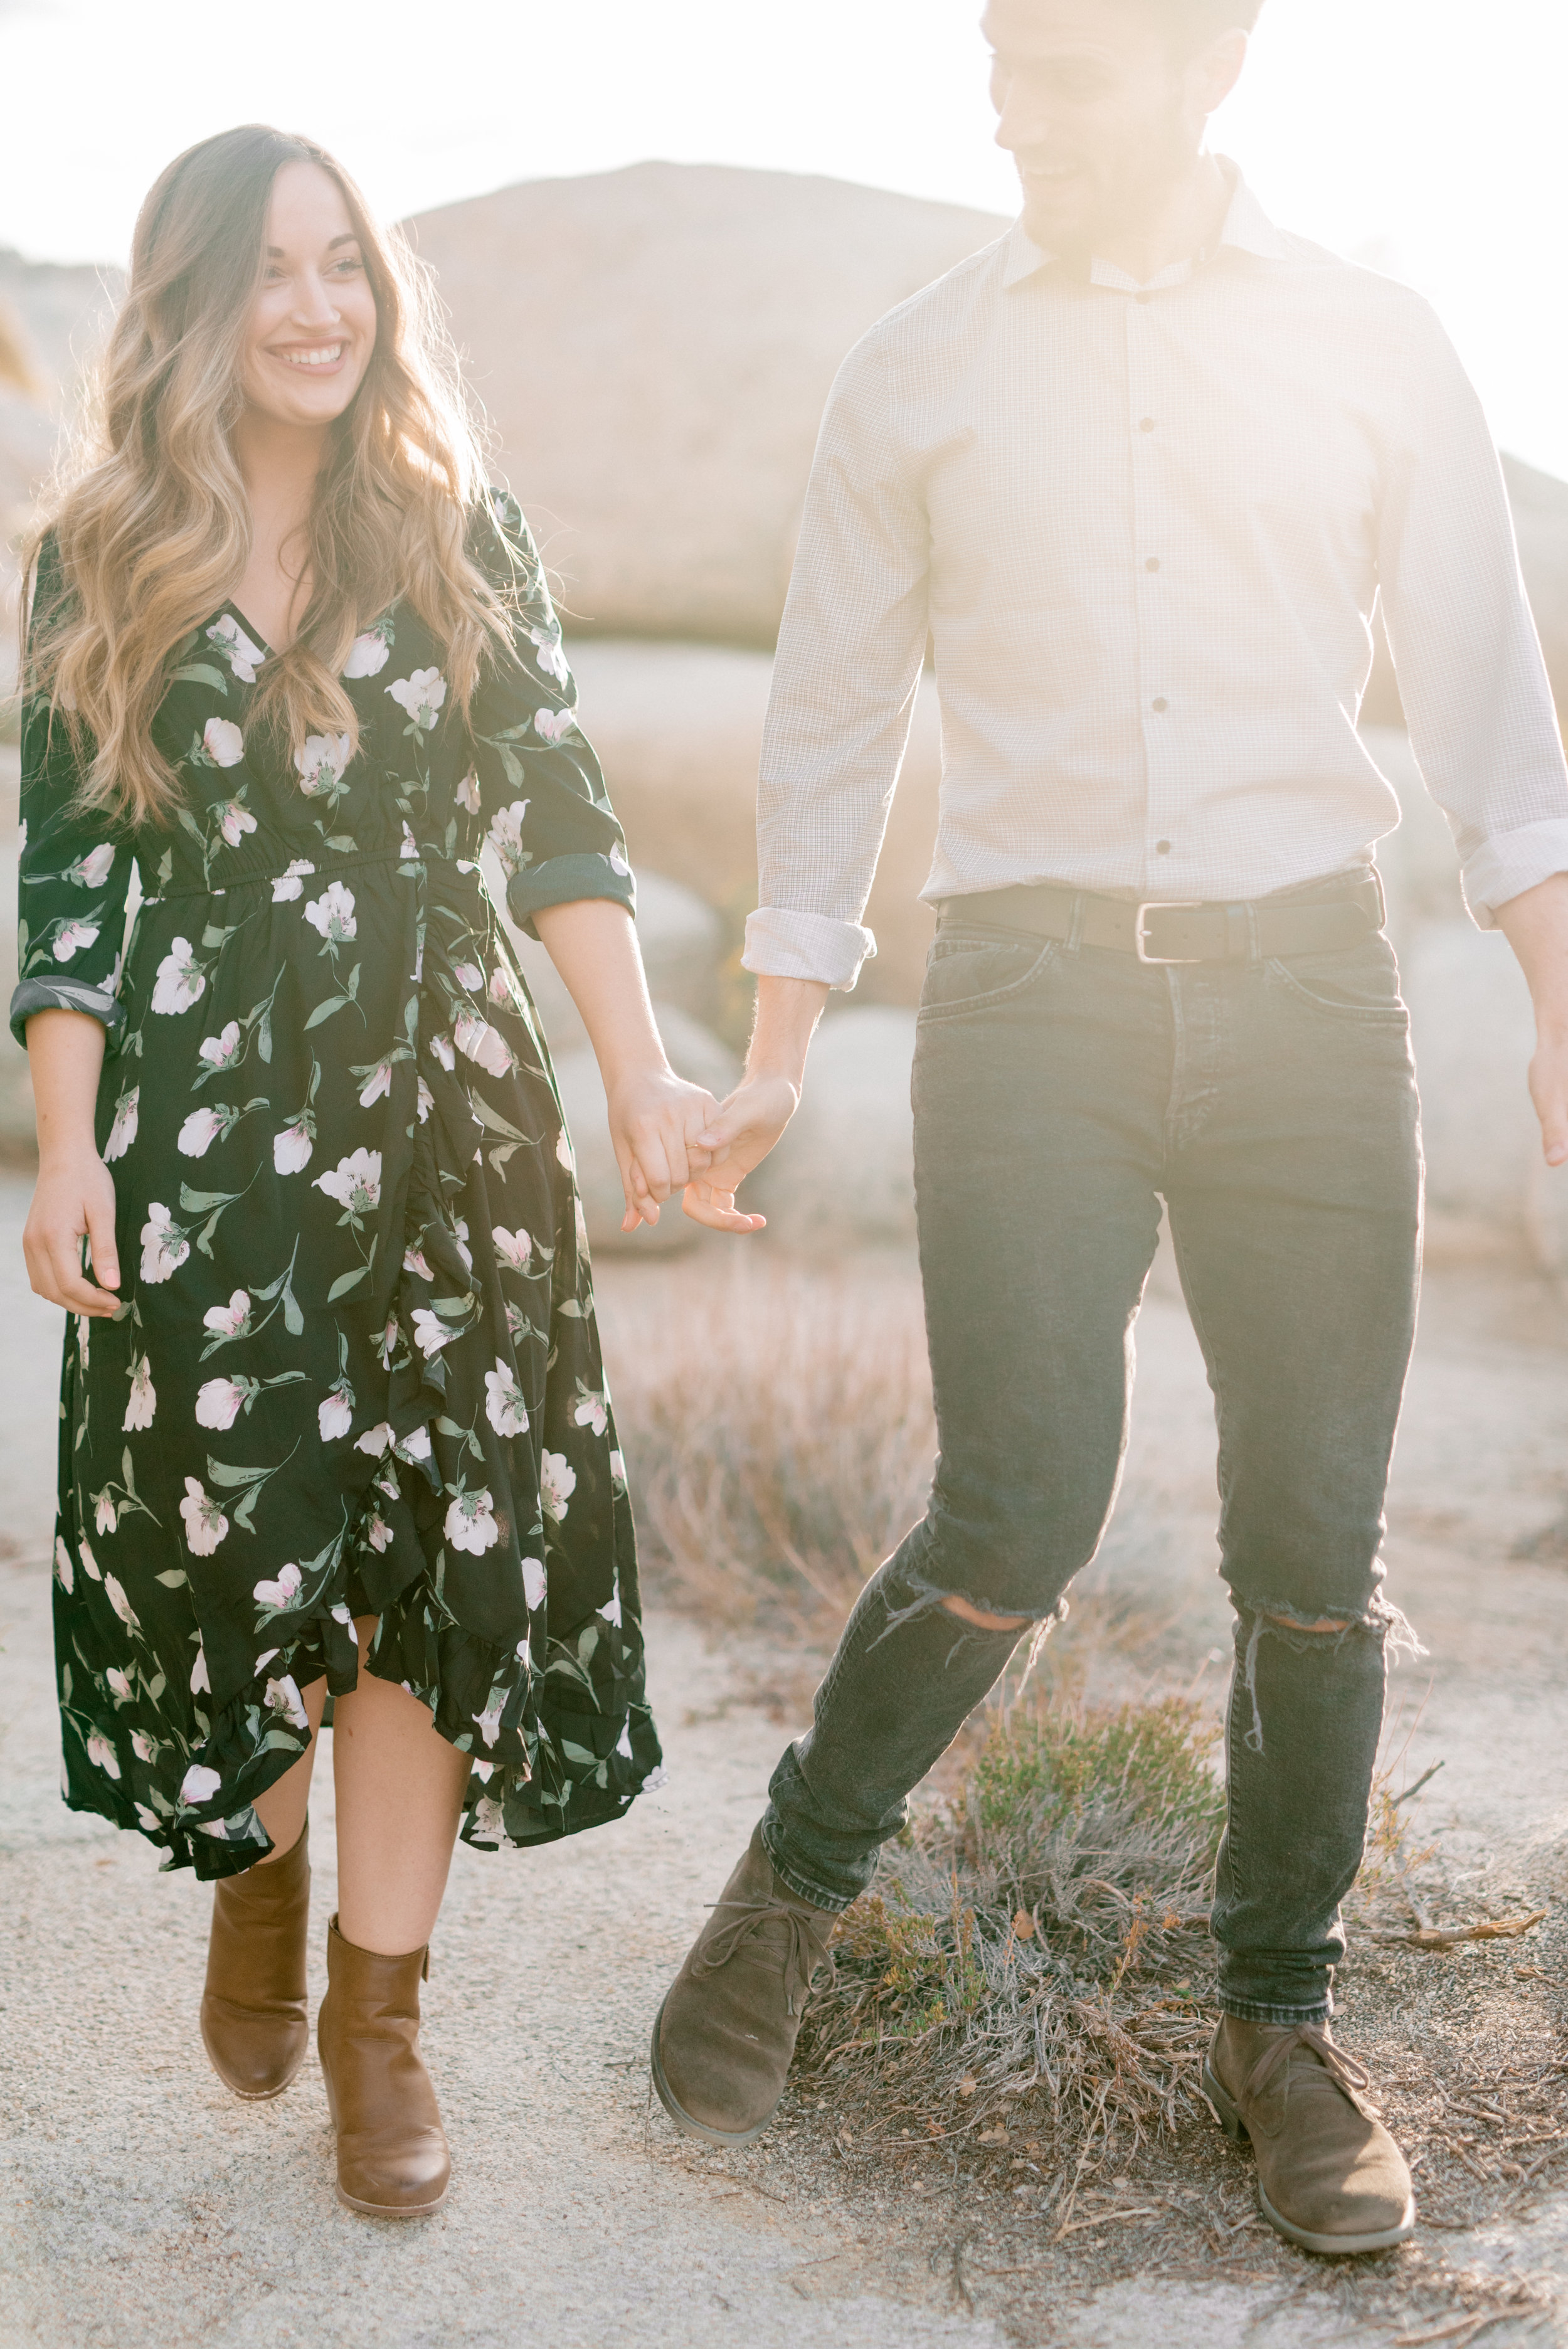 We love this casual yet put together boho look for this free-spirited desert engagement session in Joshue Tree